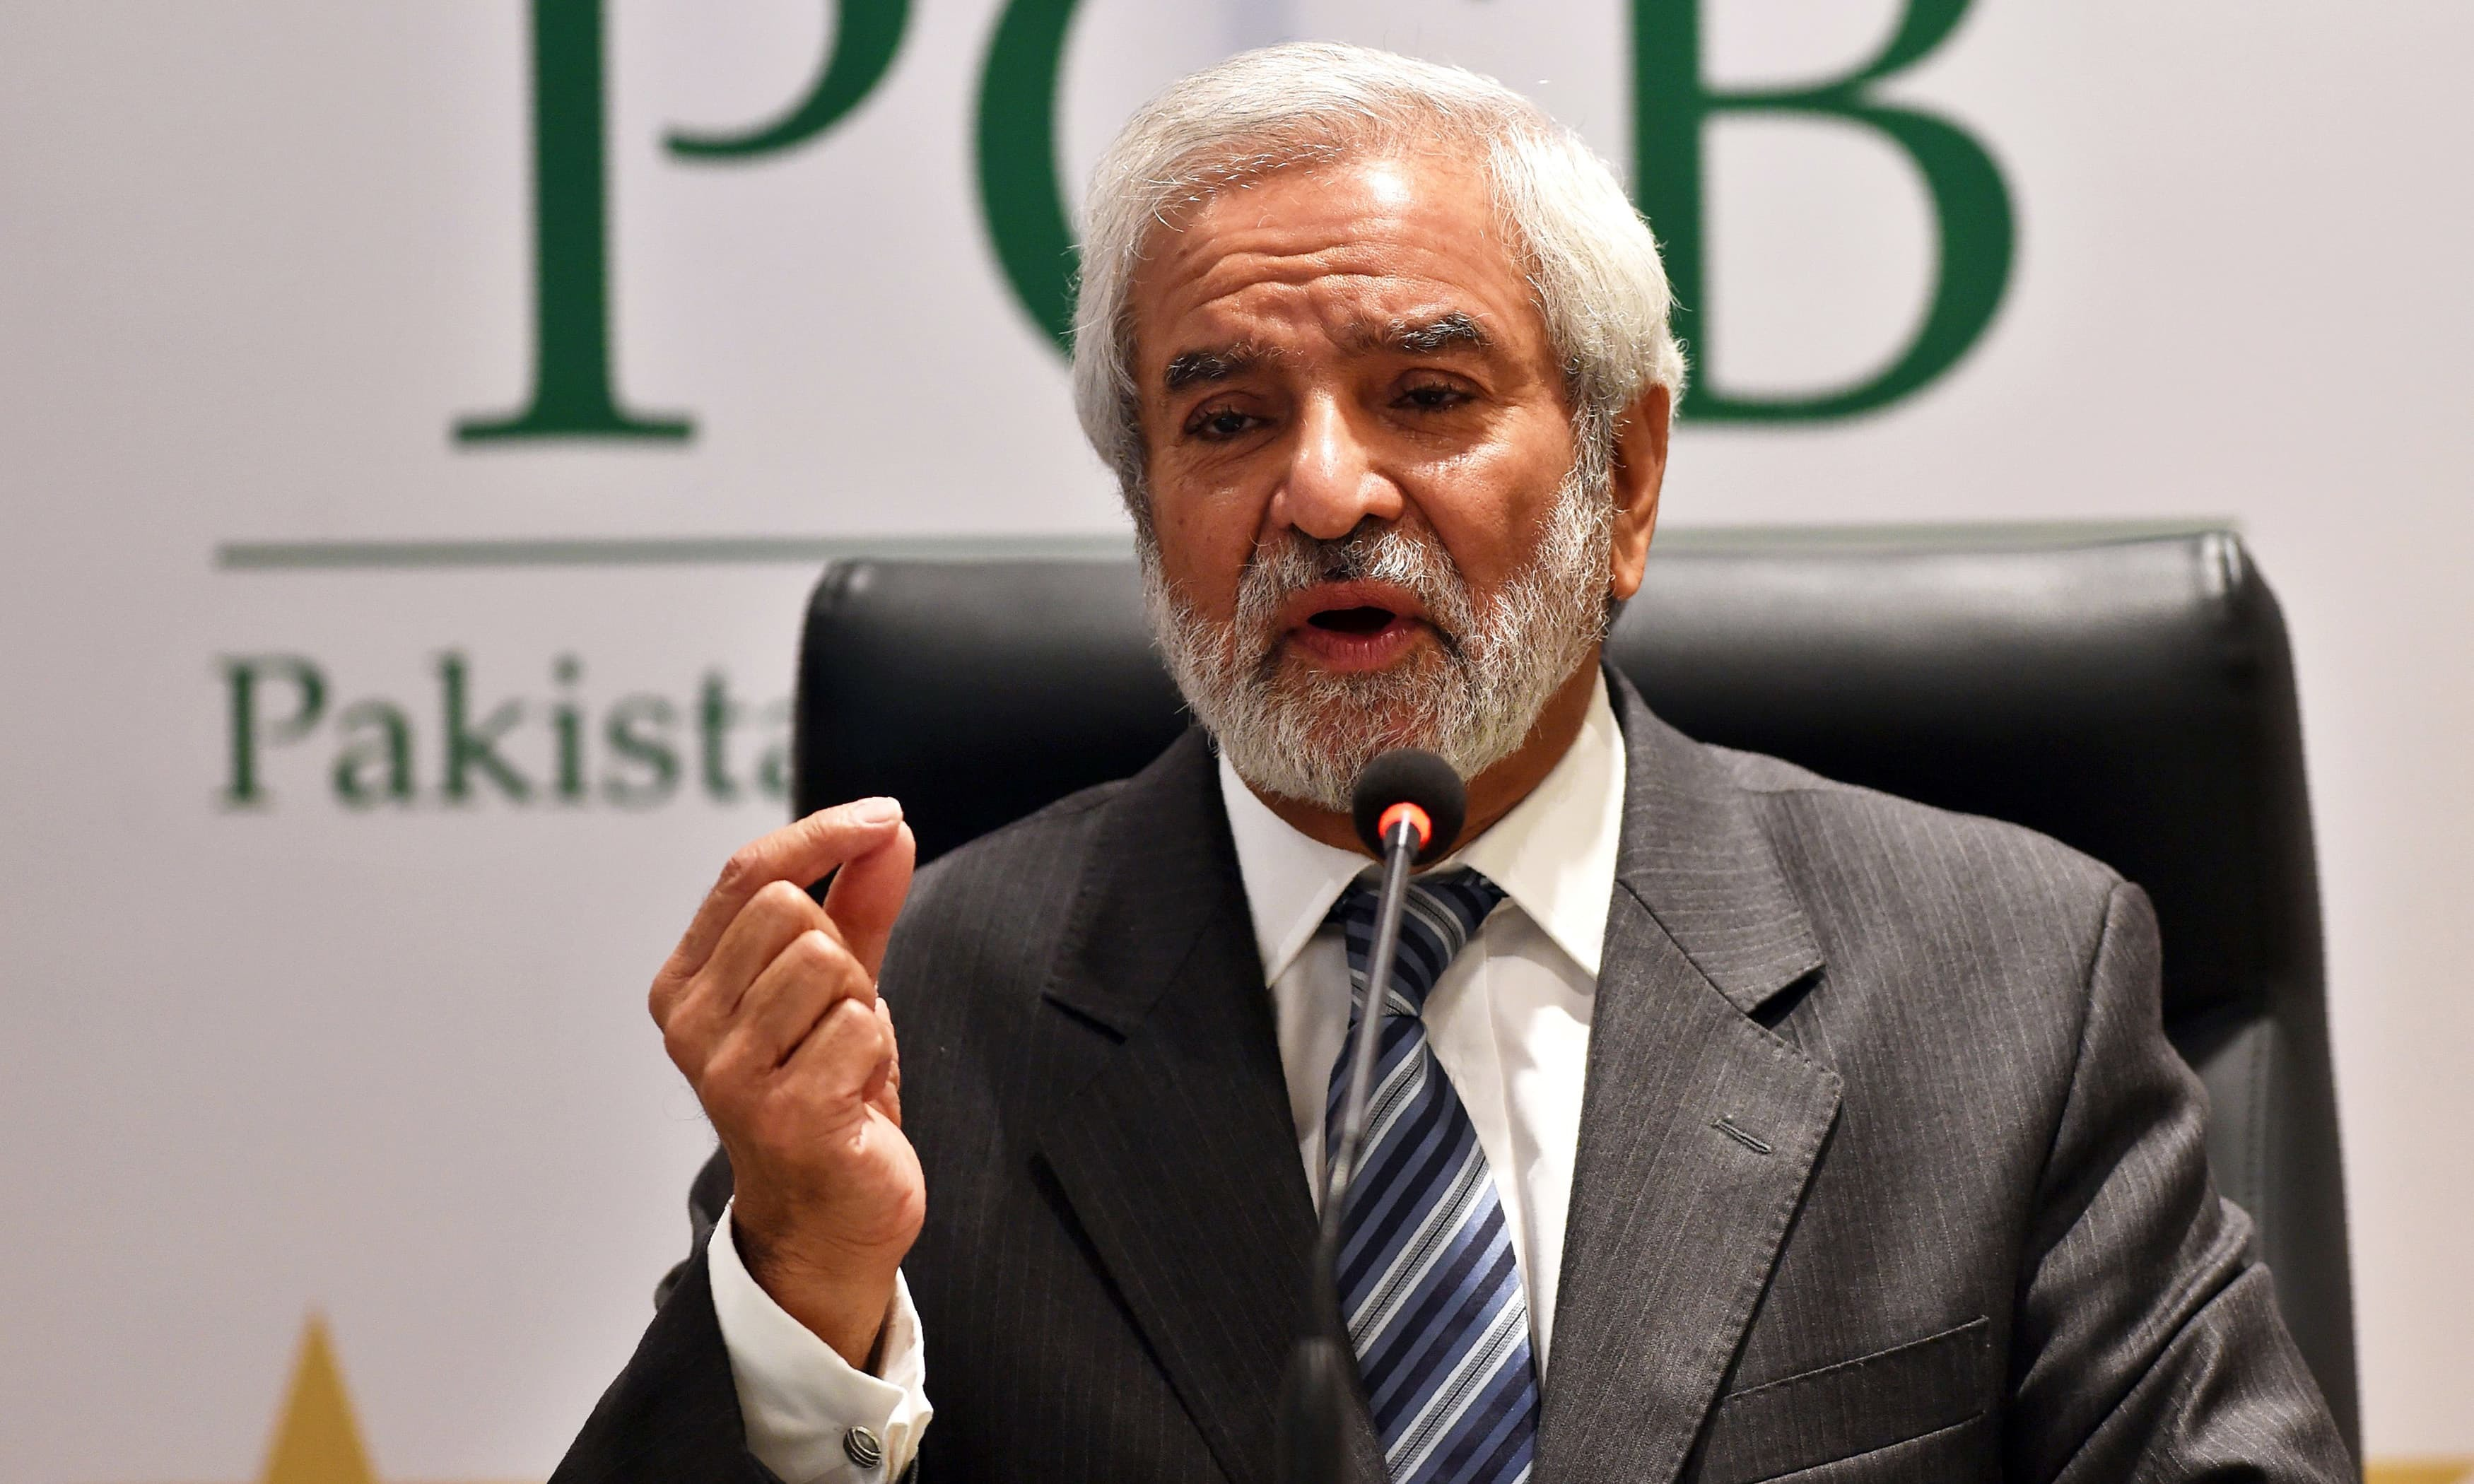 In this file photo, PCB Chairman Ehsan Mani addresses a press conference in Lahore. —AFP/File